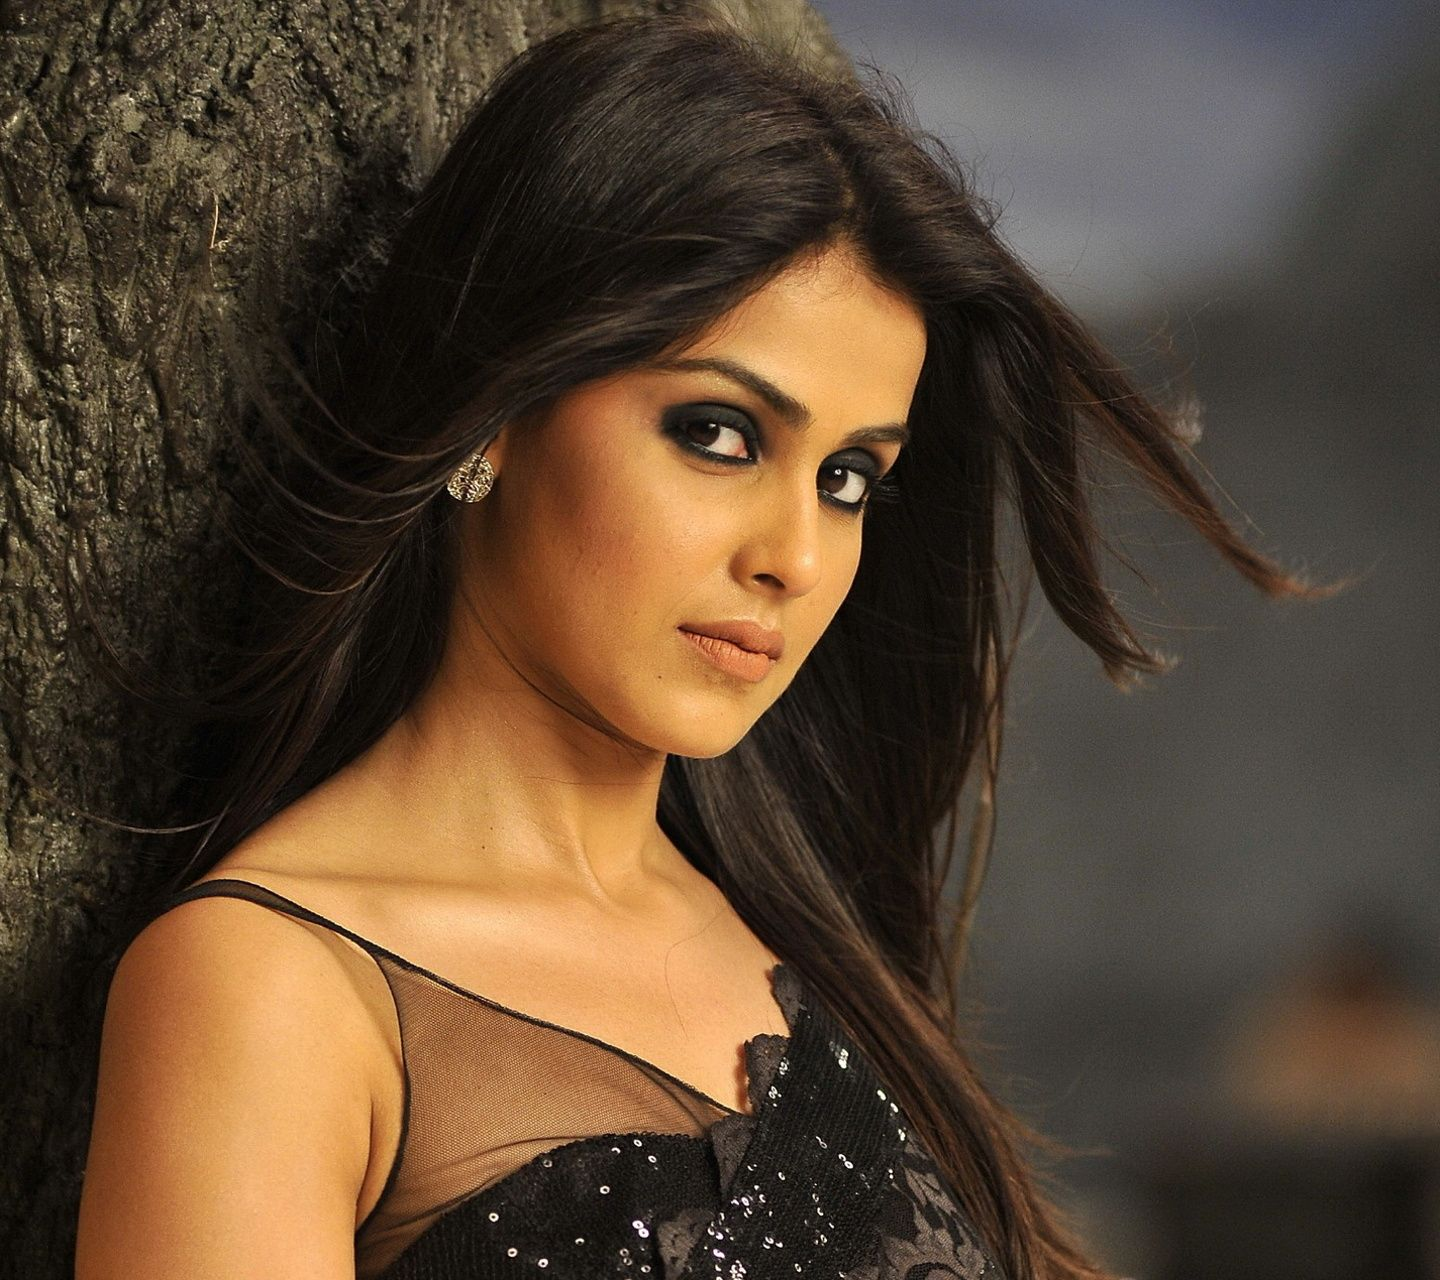 Bollywood Hd Wallpapers Bollywood Actress Wallpapers Genny